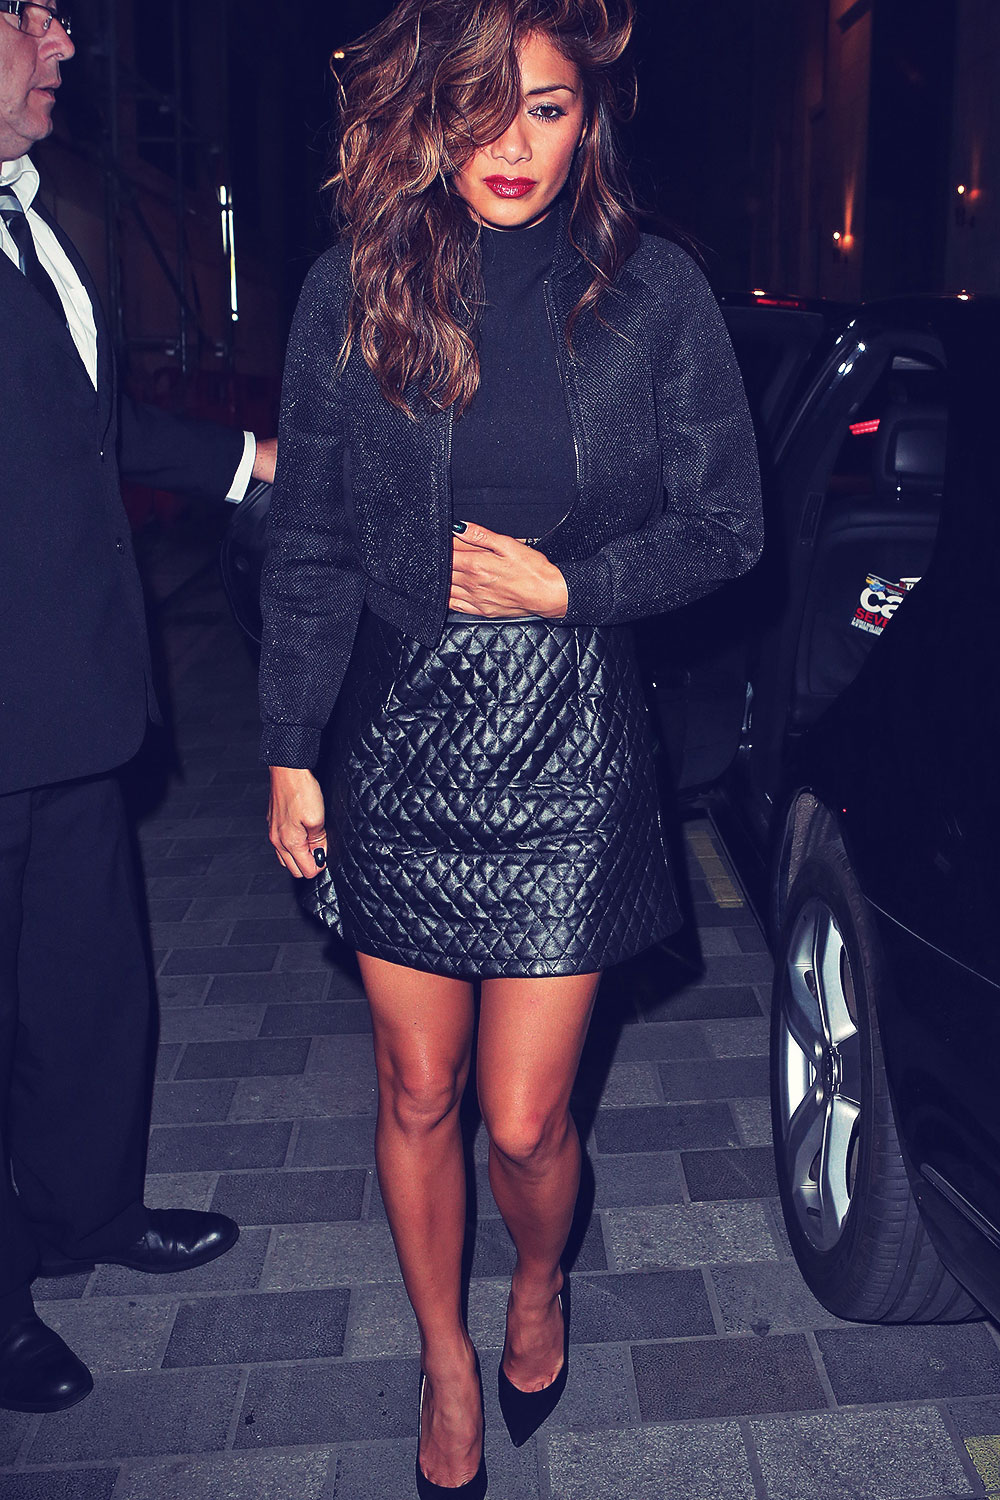 Nicole Scherzinger leaving Scotts Restaurant